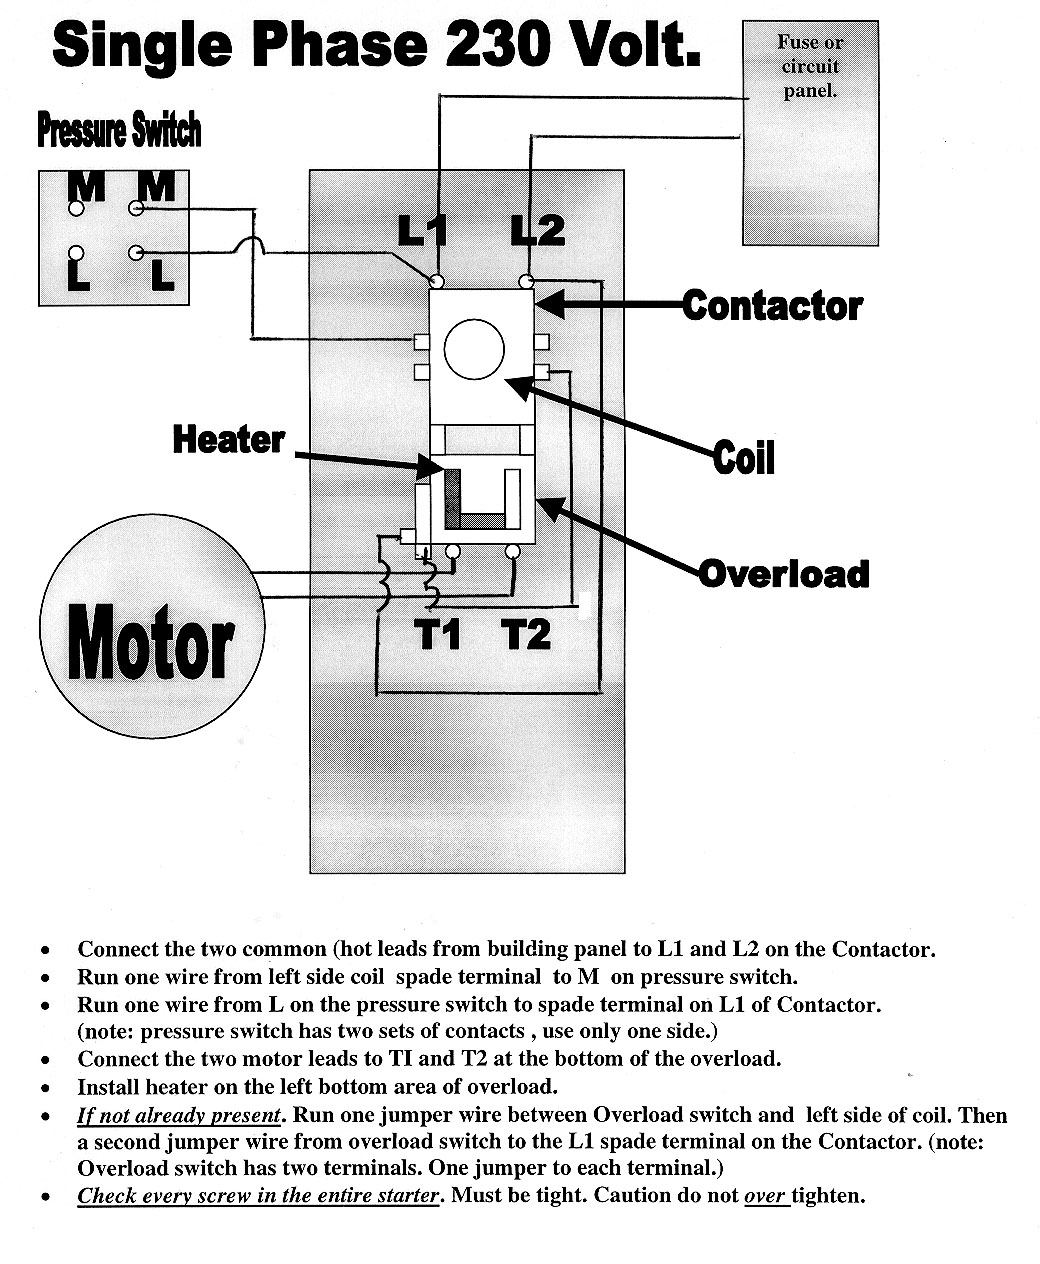 220v Wiring R S T - Wiring Diagram Progresif on 3 phase motor wiring connection, 3 phase electrical wiring, 3 phase voltage symbol, 3 phase heating element connections, wye delta connection diagram, 480 three-phase diagram, 3 phase resistance calculation, 480 open delta transformer diagram, 3 phase wire identification uvw, three-phase circuit diagram, 480v heating element diagram, 3 phase electric heat formulas, open delta transformer connection diagram, 3 phase wye wiring, 3 phase wiring a receptacle, power diagram, 3 phase wiring for dummies,